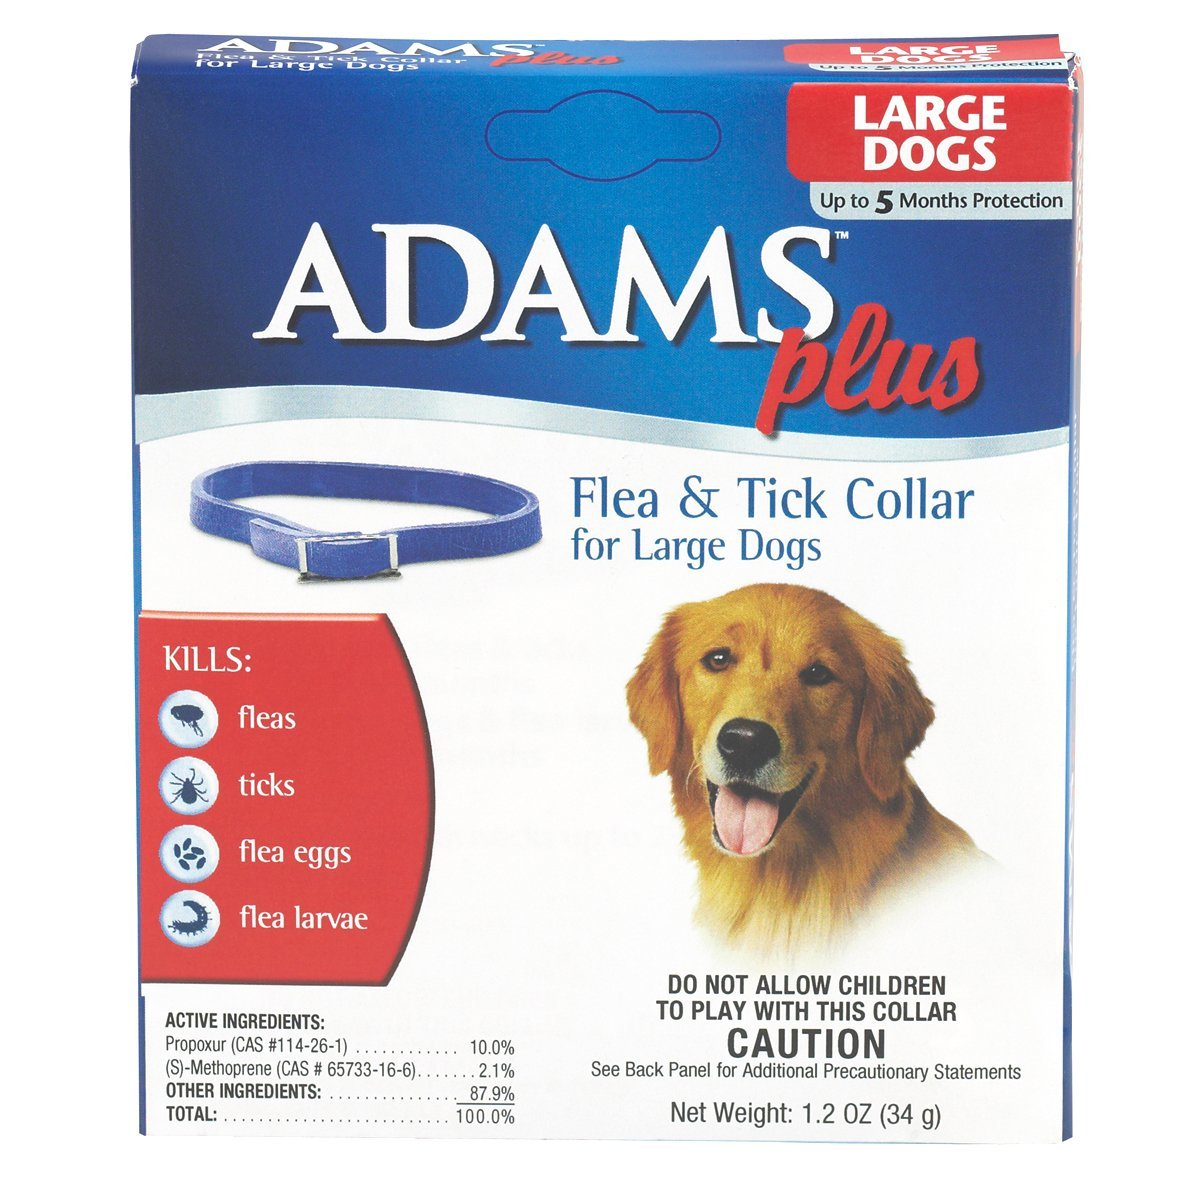 Adams Plus Flea and Tick Collars